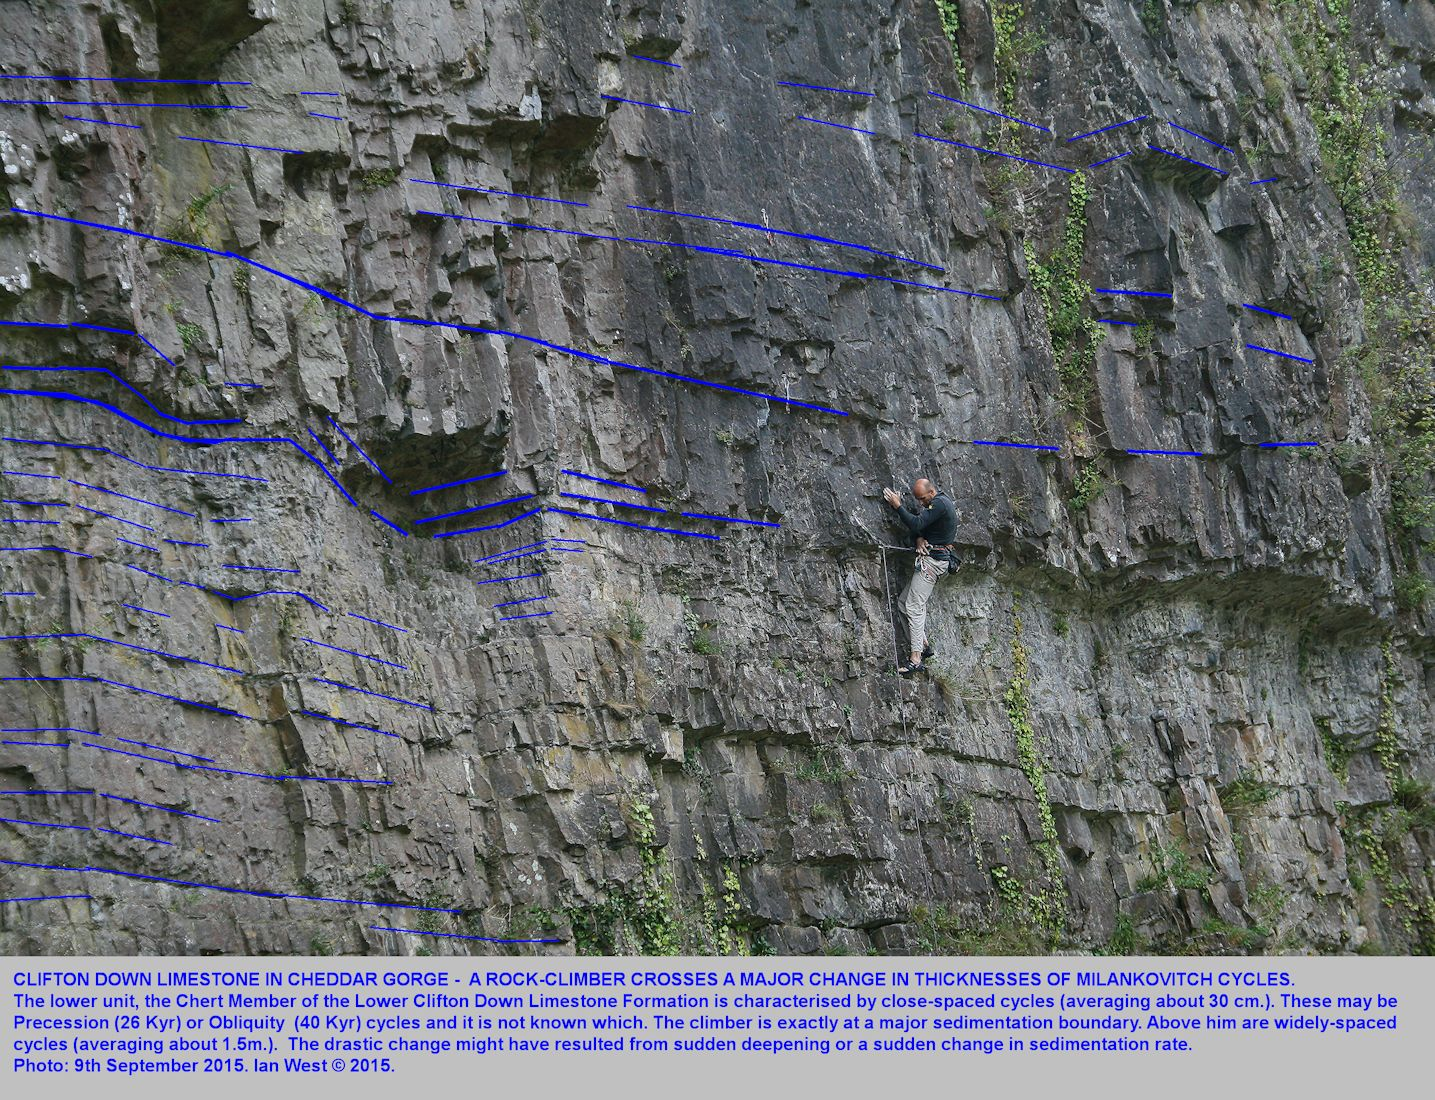 A rock climber at the overhang above the Chert Member of the Lower Clifton Down Limestone Formation, Cheddar Gorge, Mendip Hills, Somerset, 9th September 2015